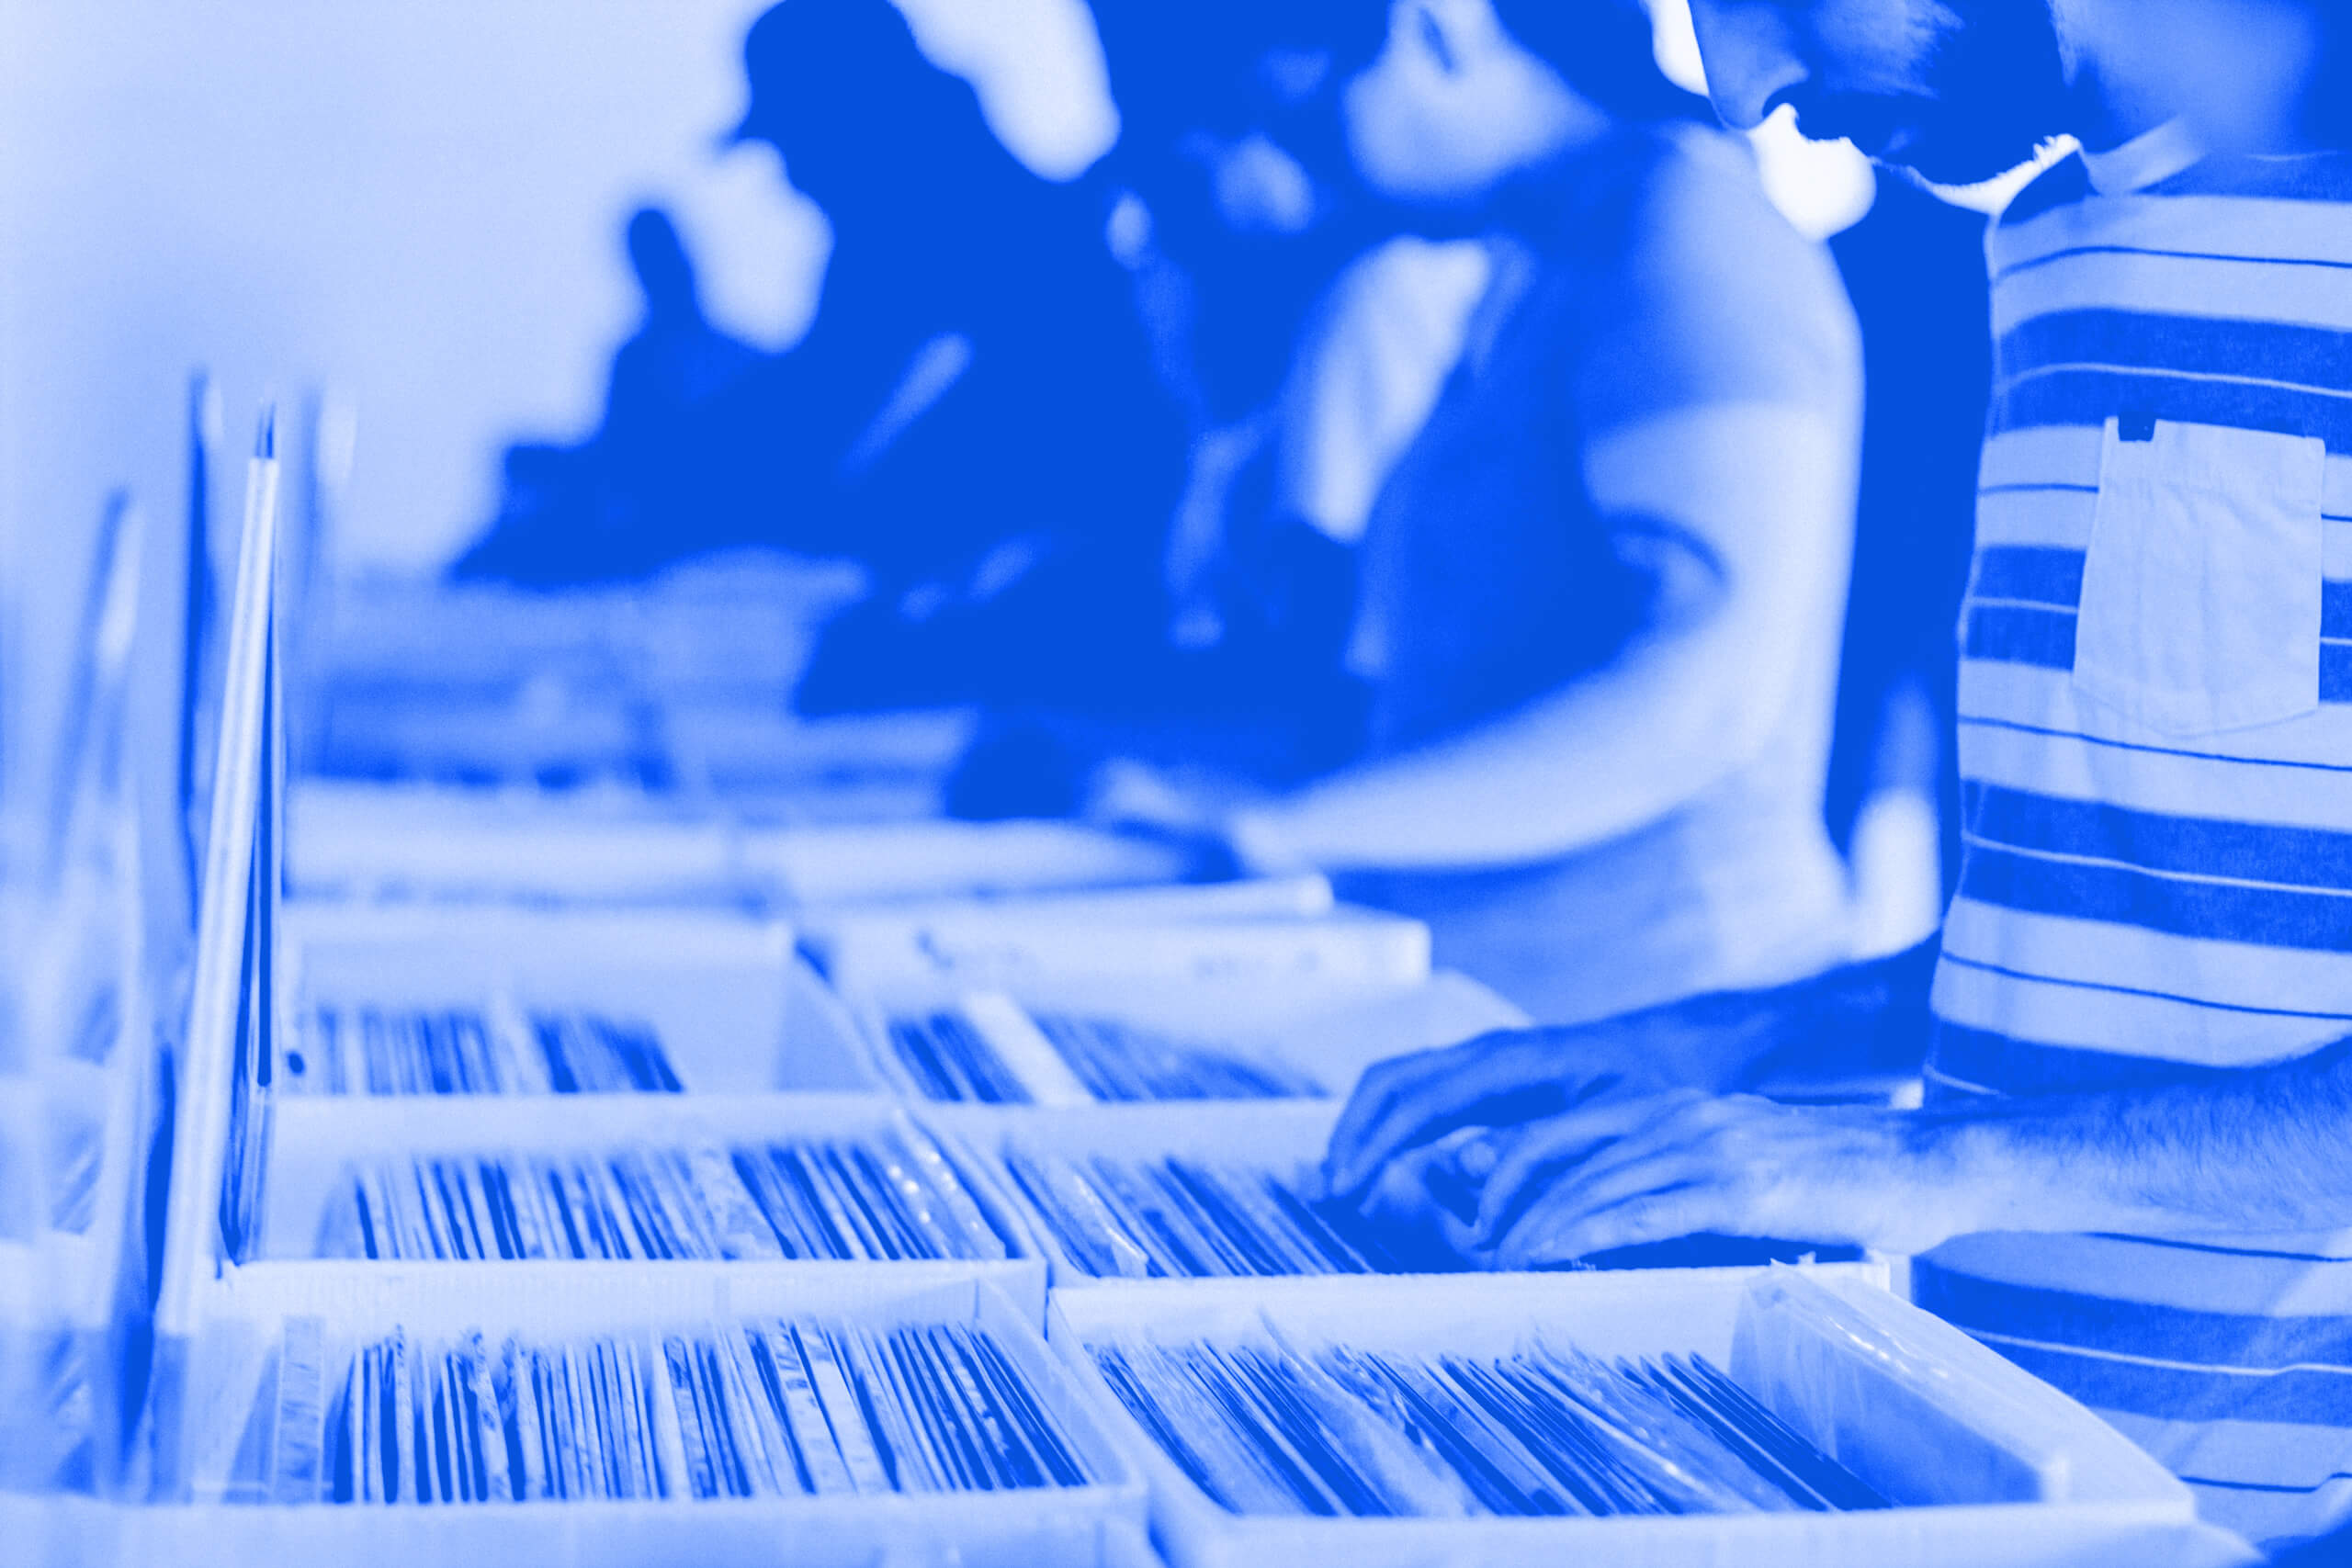 Website Redirects - People in Shop Searching Music Catalogue